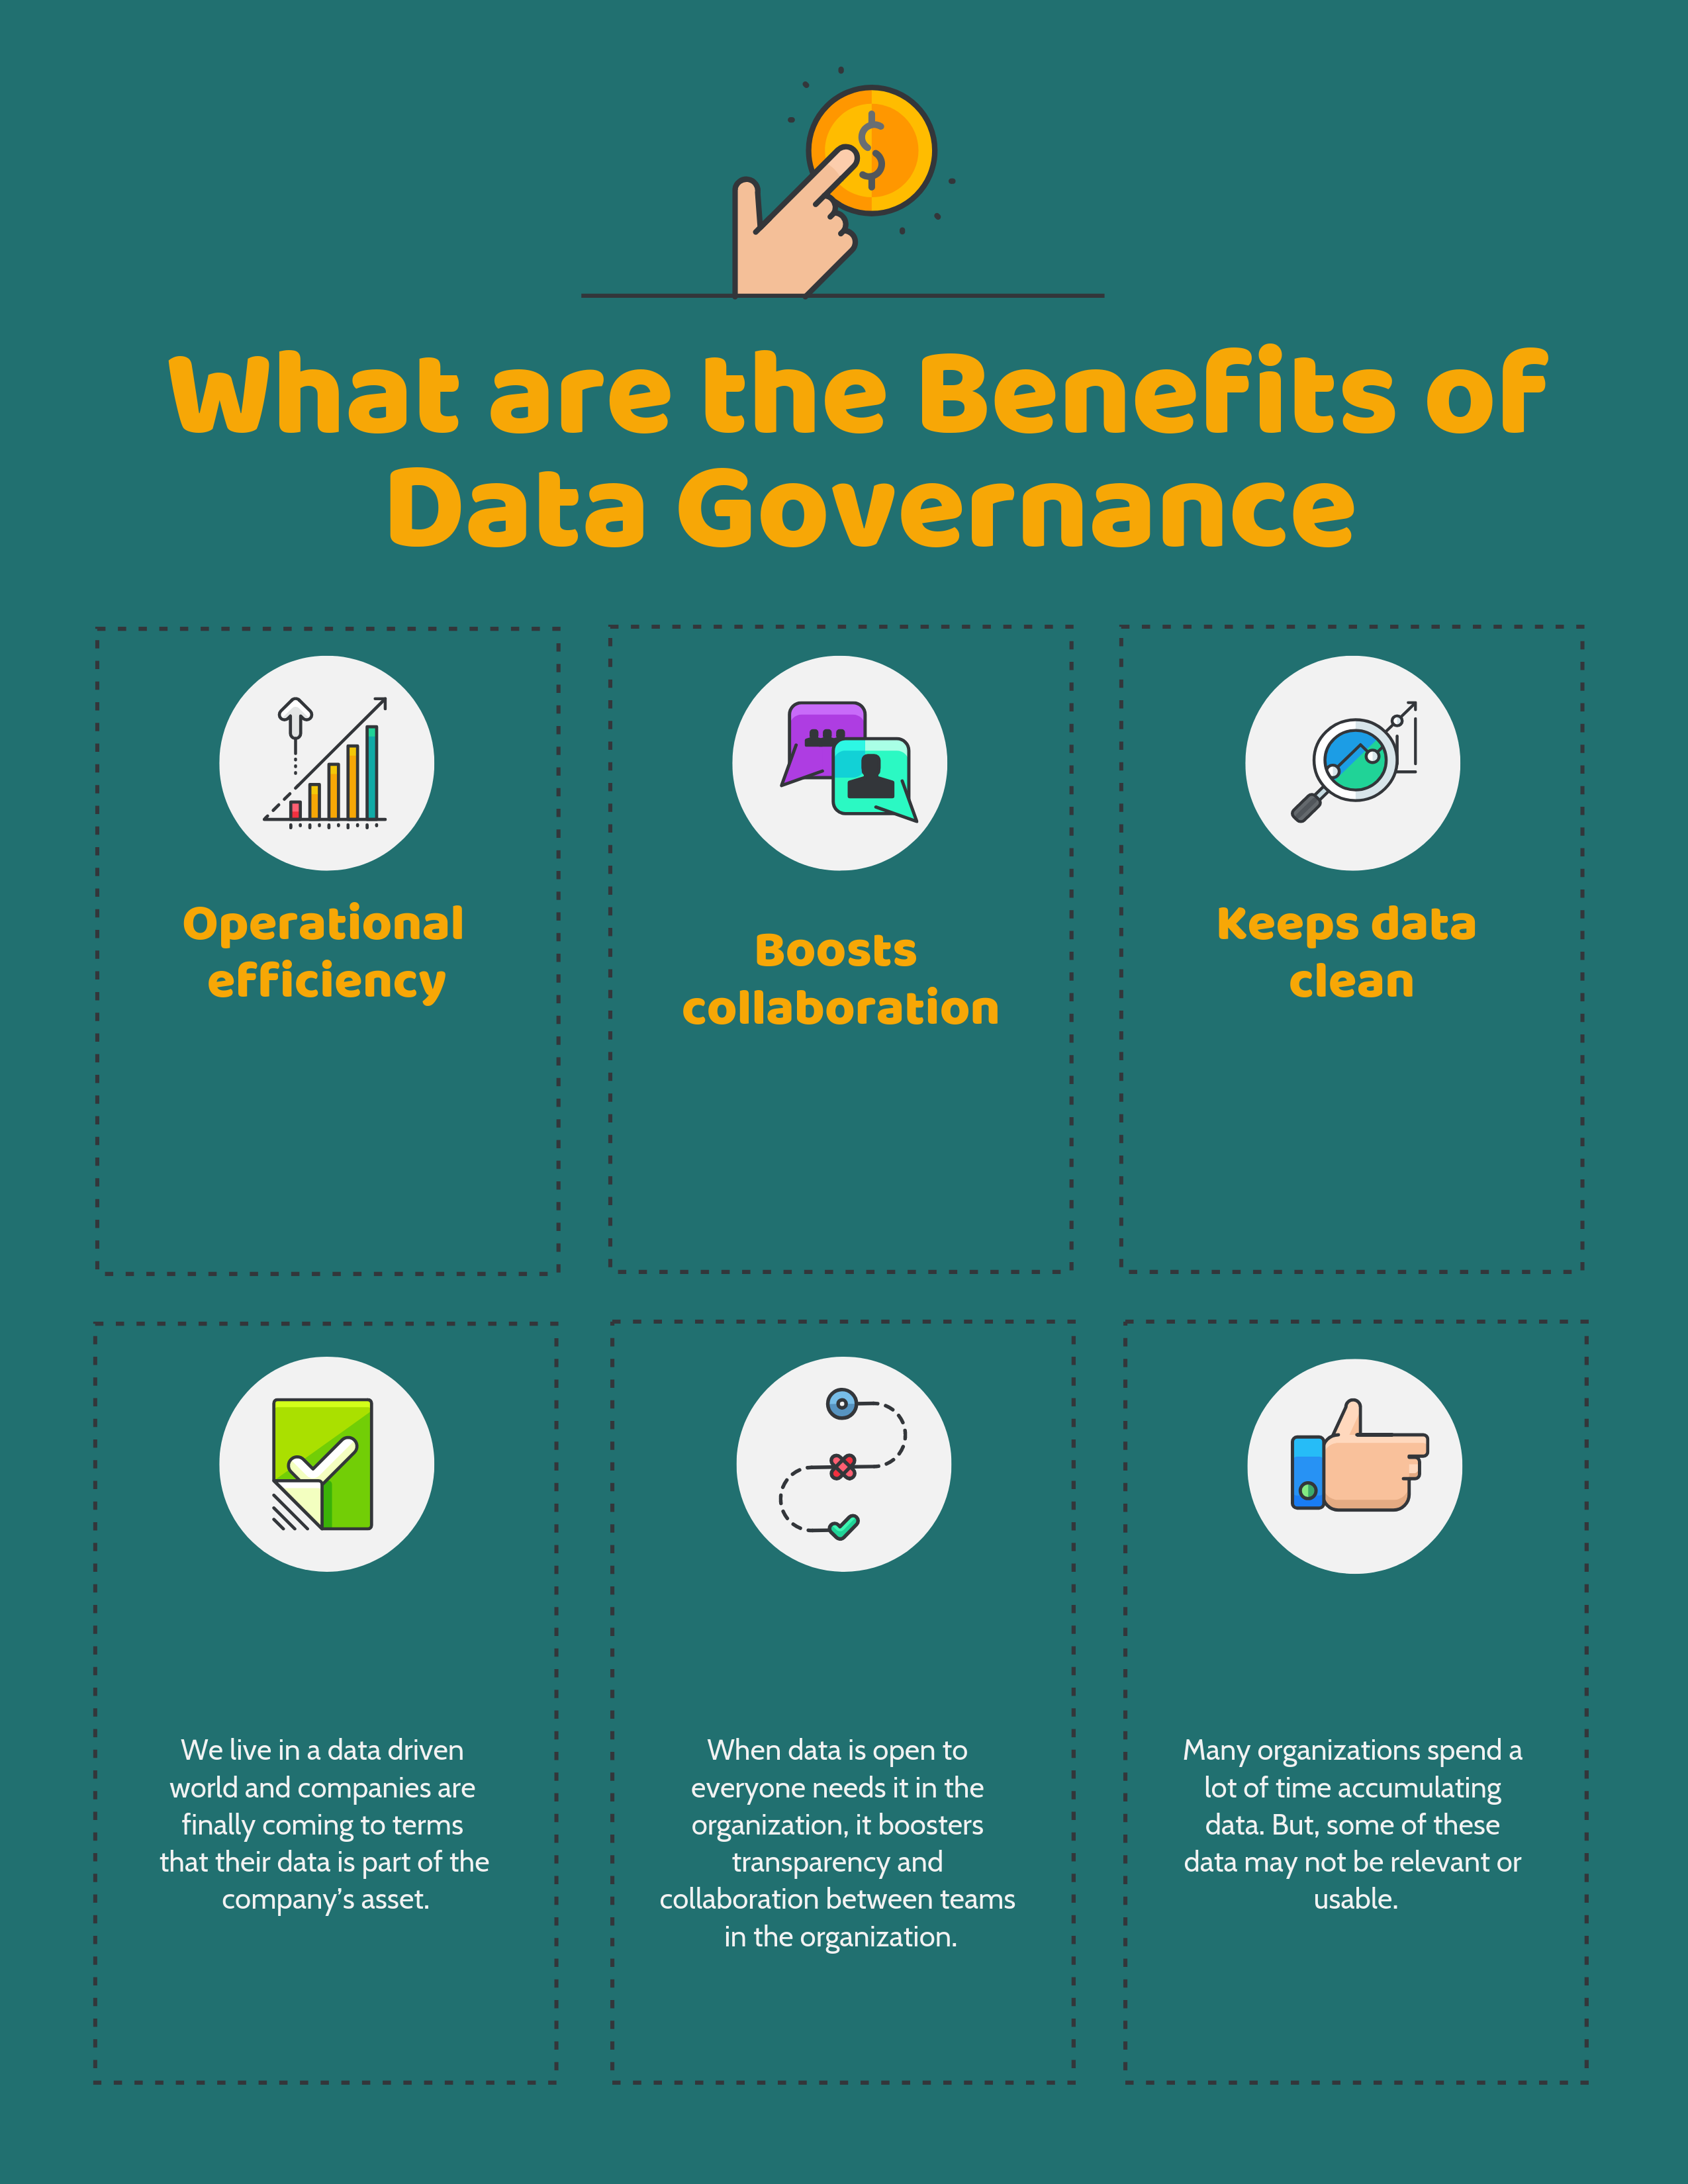 What are the Benefits of Data Governance